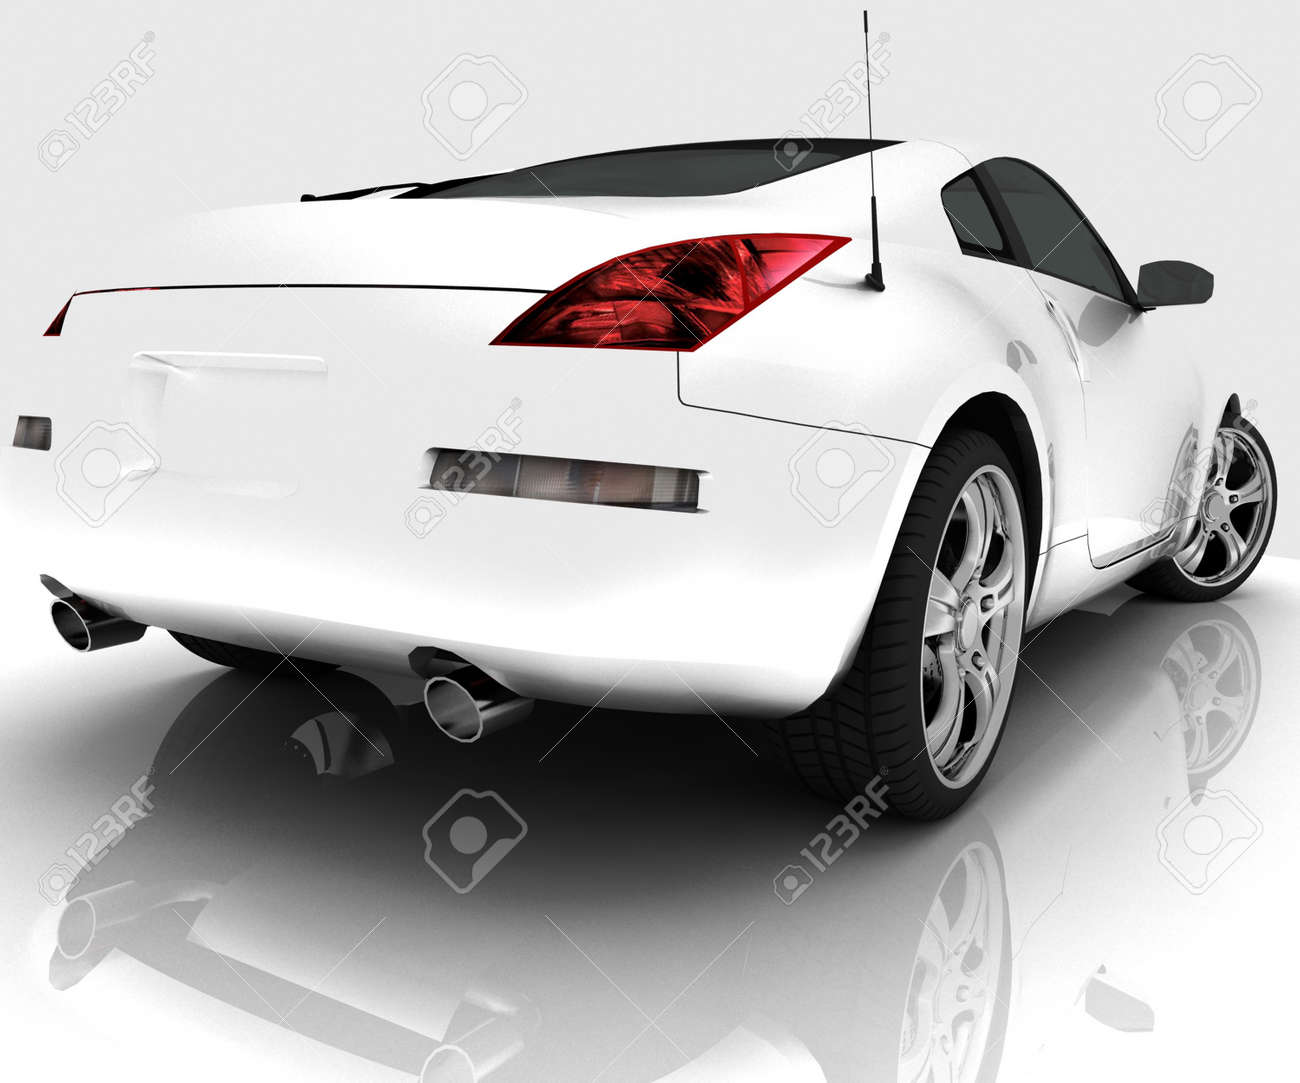 Car model on white background with reflection Stock Photo - 13407836